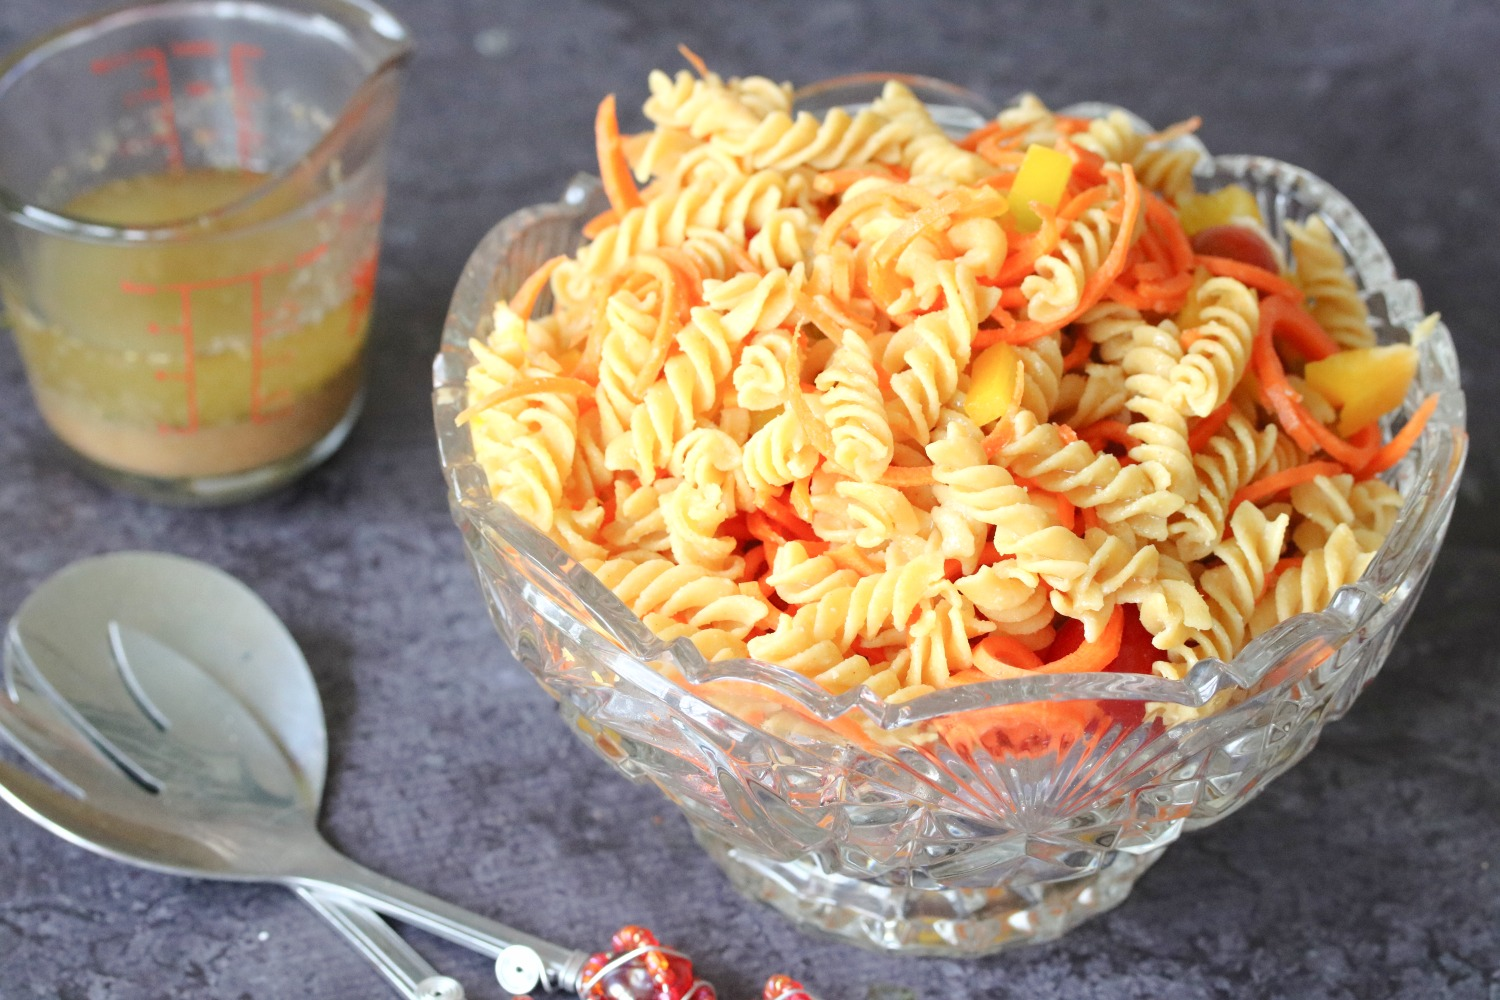 Easy, gluten-free pasta salad in a glass bowl